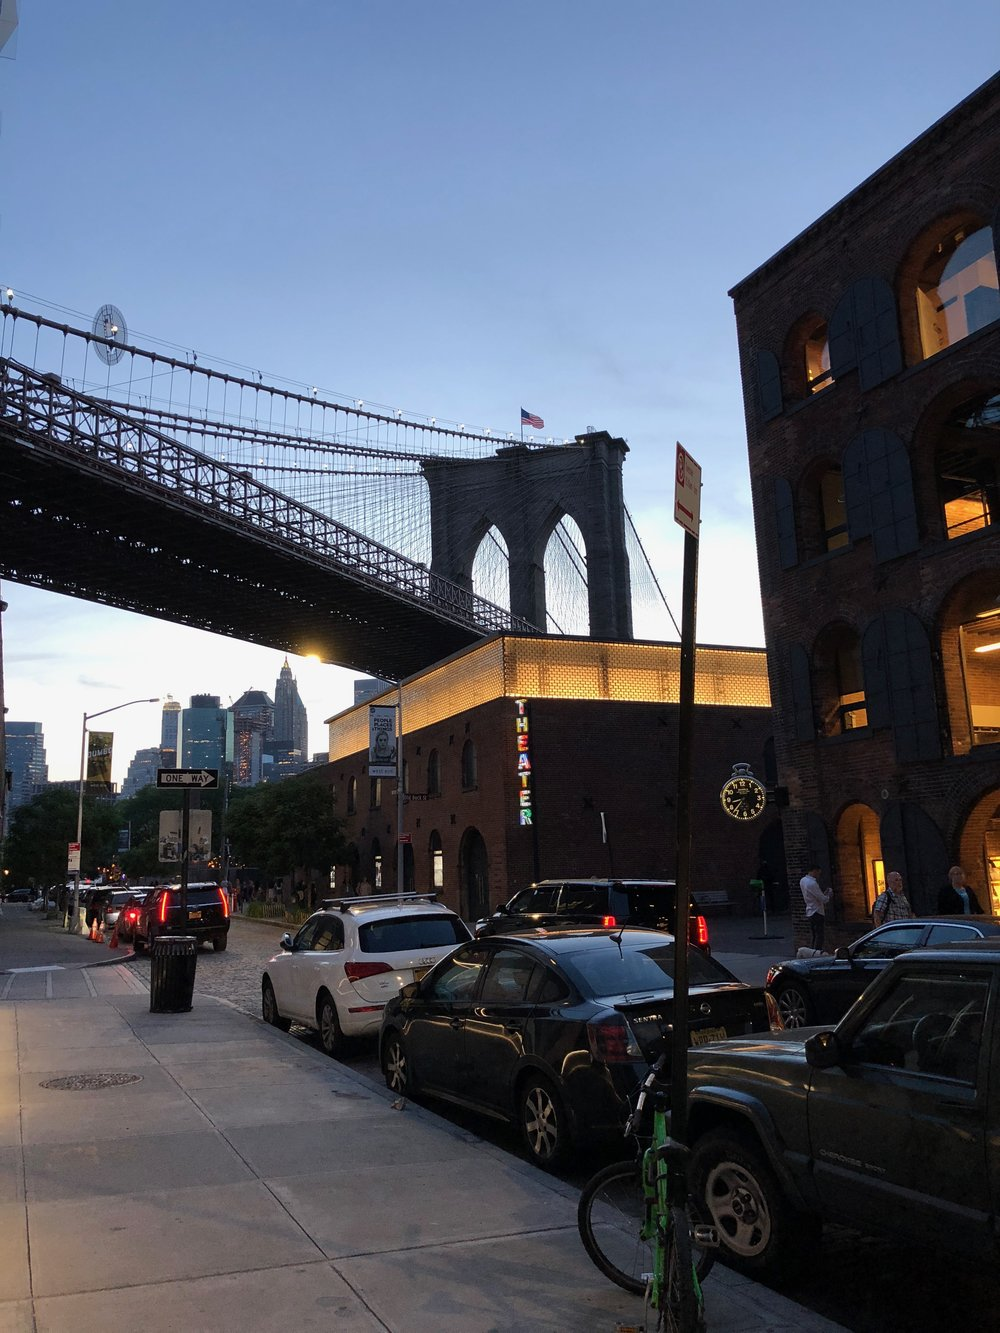 Shot in DUMBO (Down Under the Manhattan Bridge Overpass)